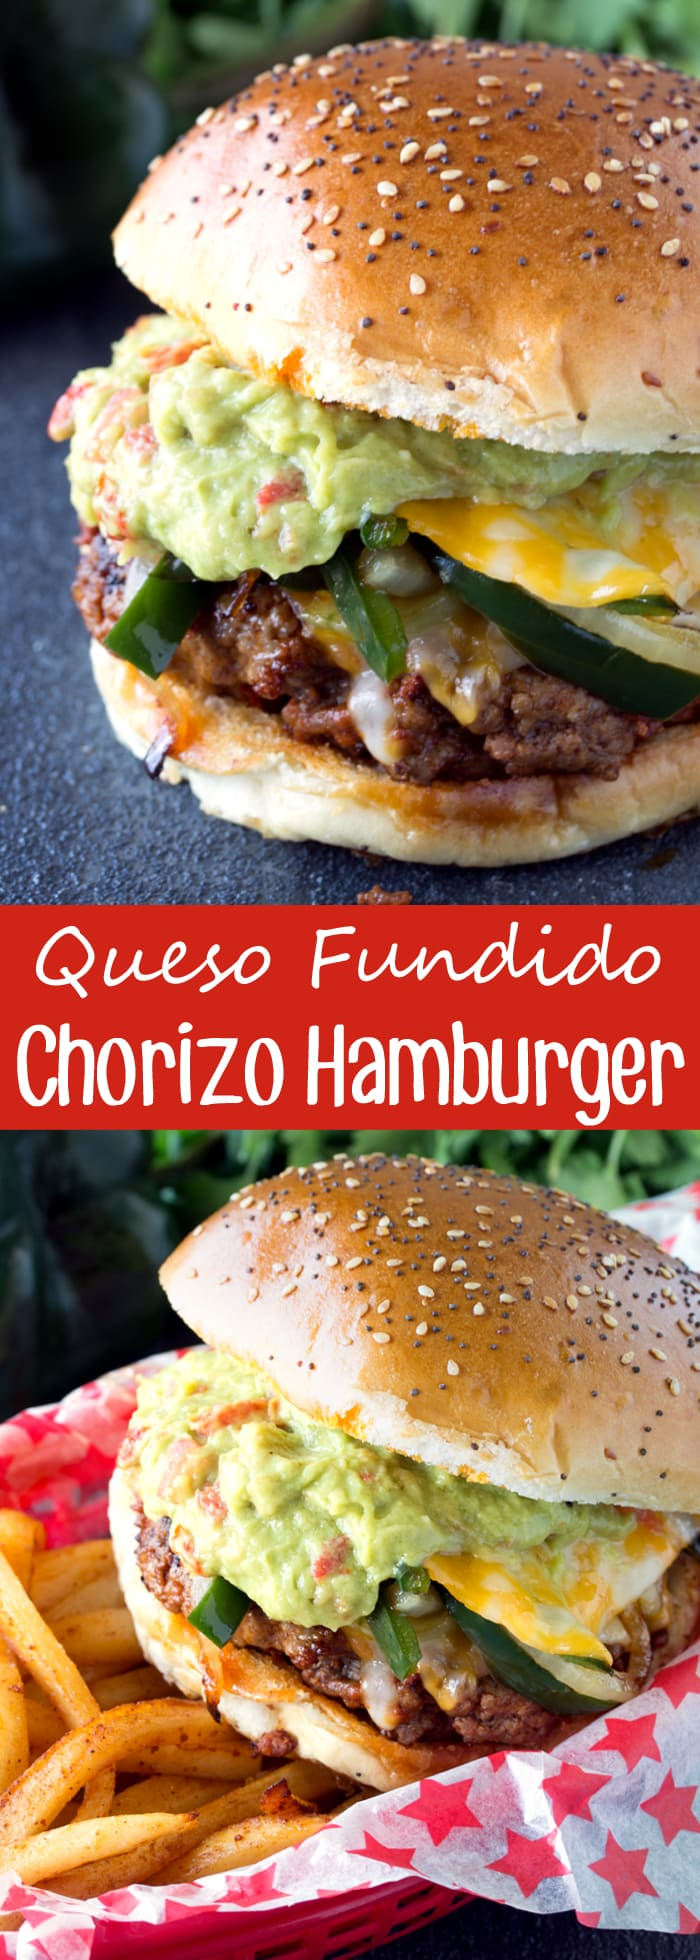 This Mexican-inspired burger packs a punch of flavor with the chorizo ground beef patty smothered in peppers, onions, and cheese. It's a Queso Fundido Chorizo Hamburger.